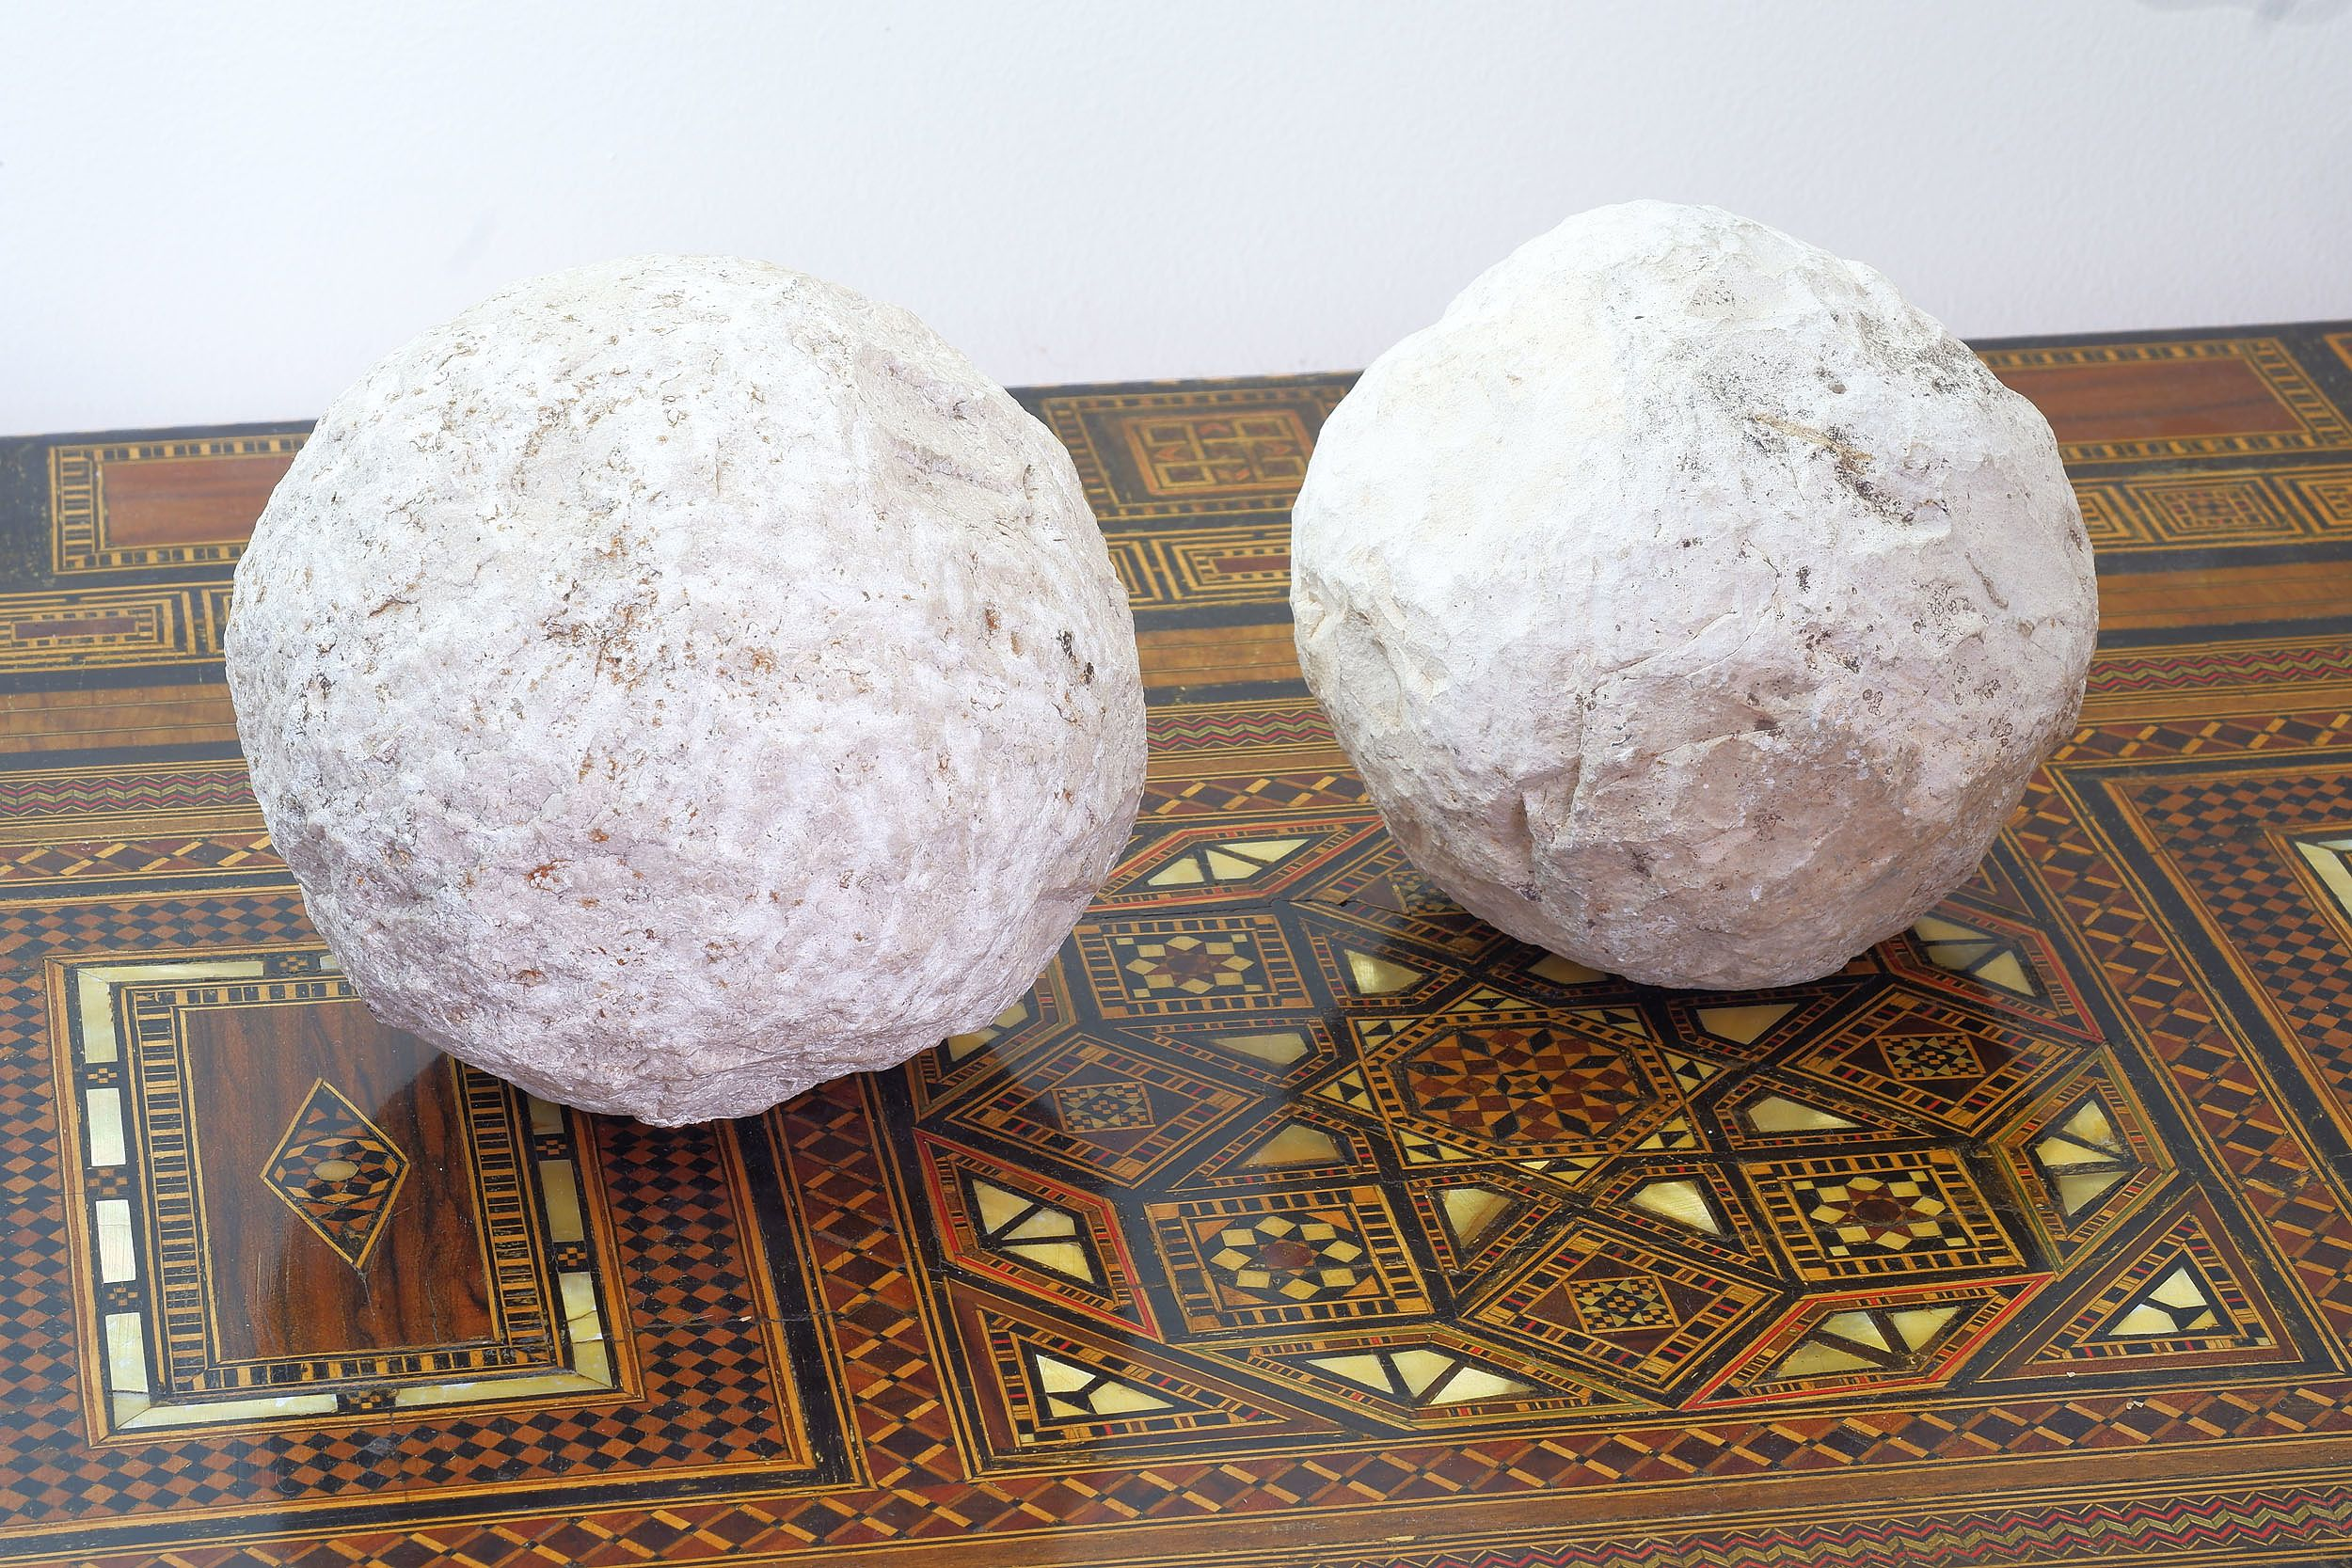 'Two Archaic Style Limestone Catapult Balls'